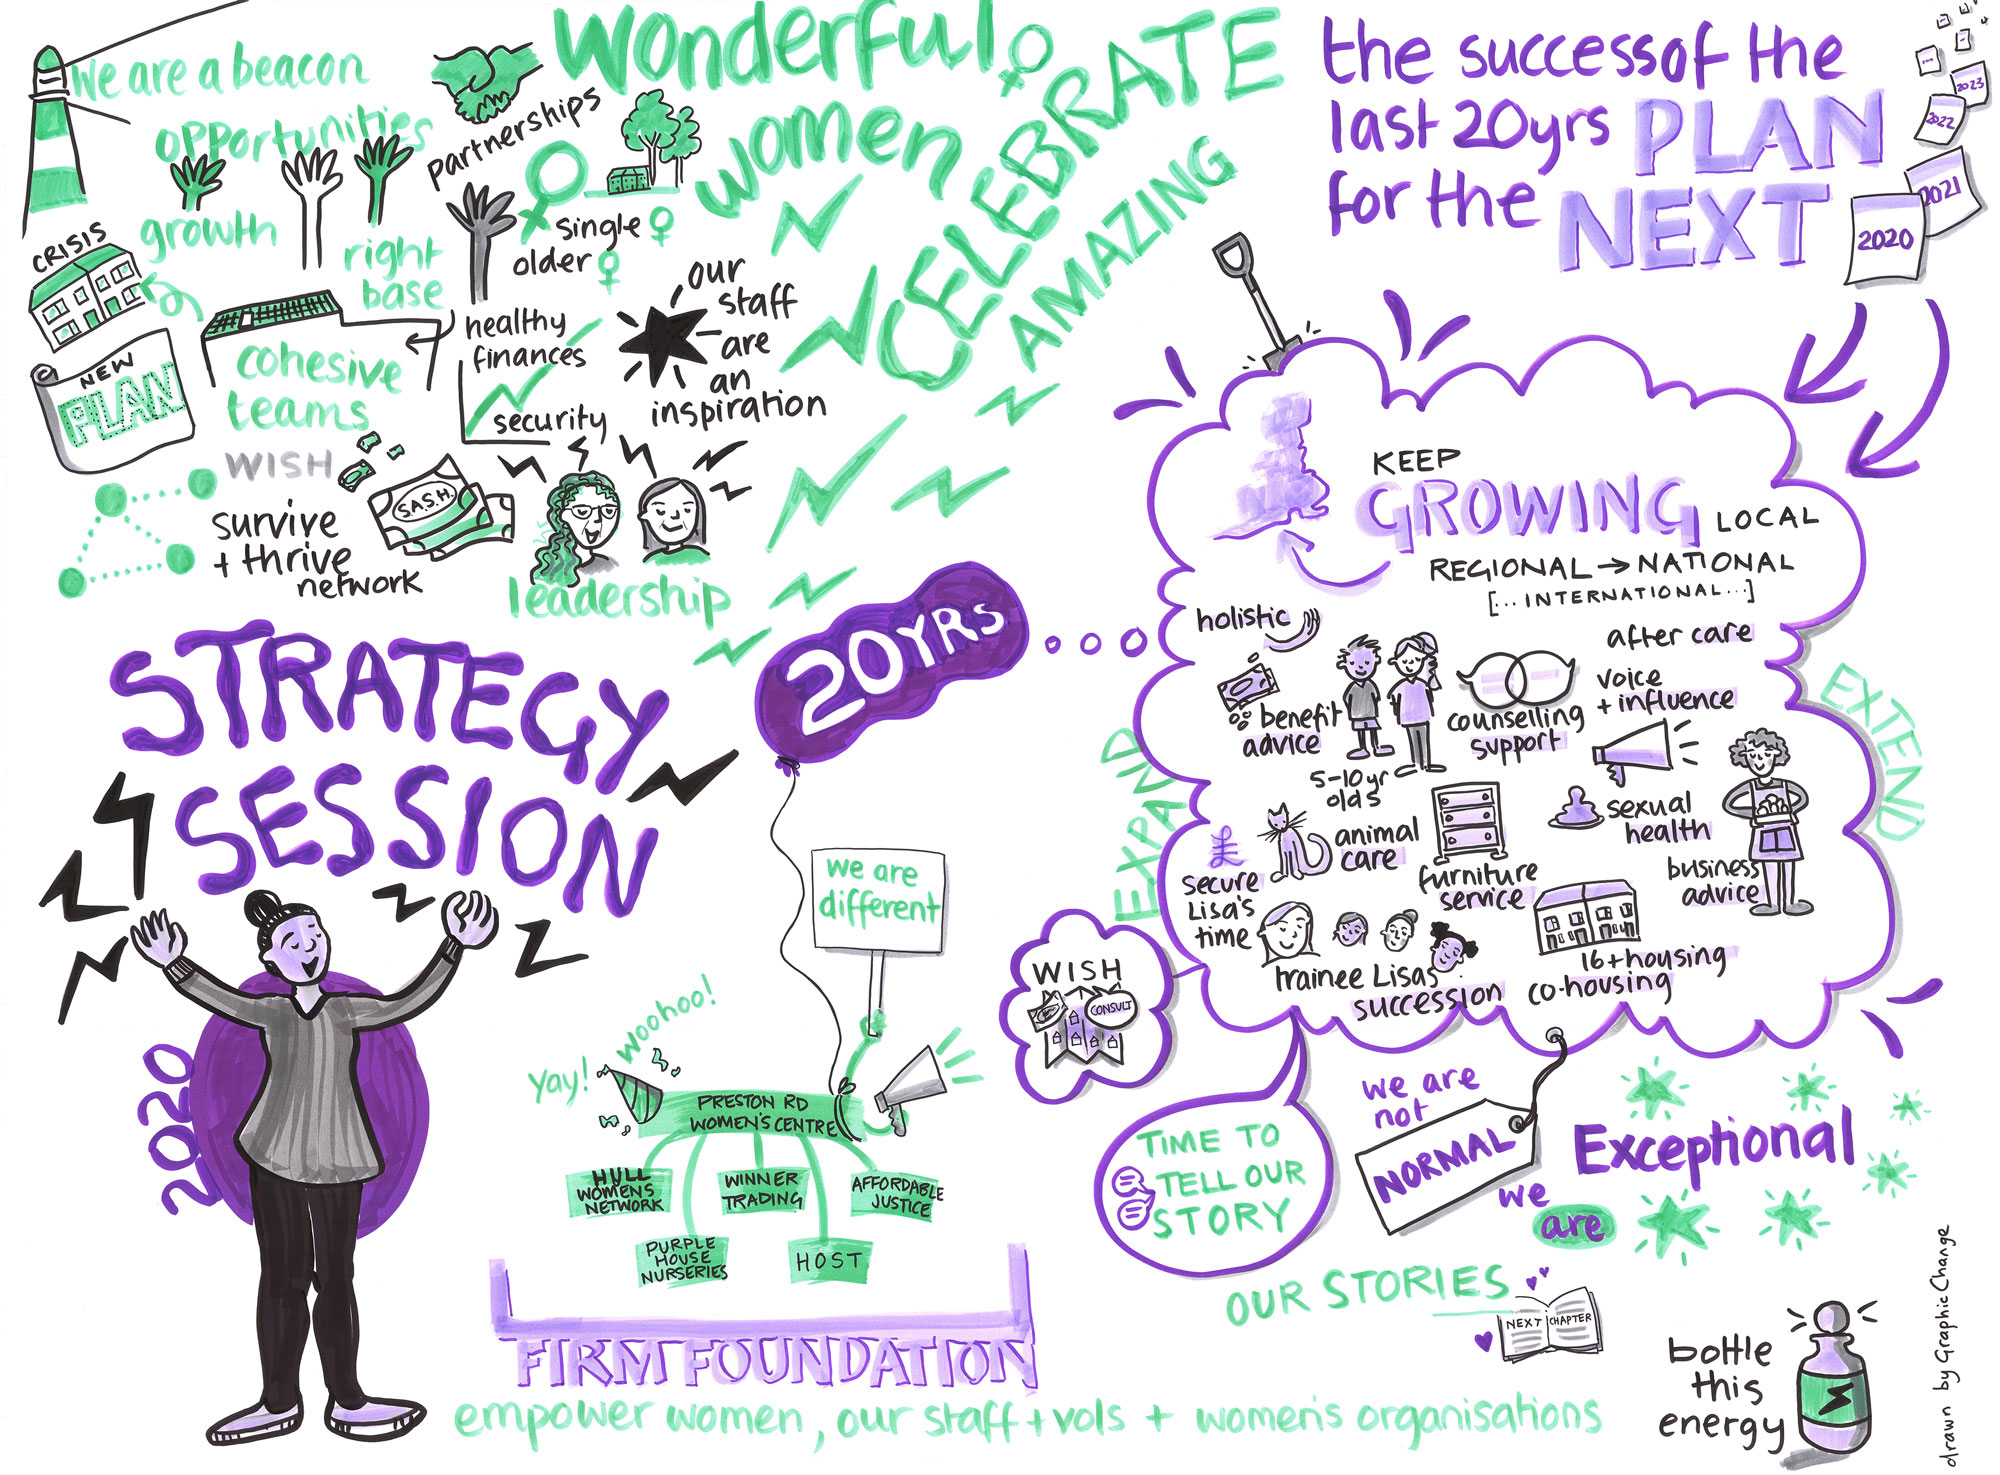 Live graphic recording - 1/2 day meeting